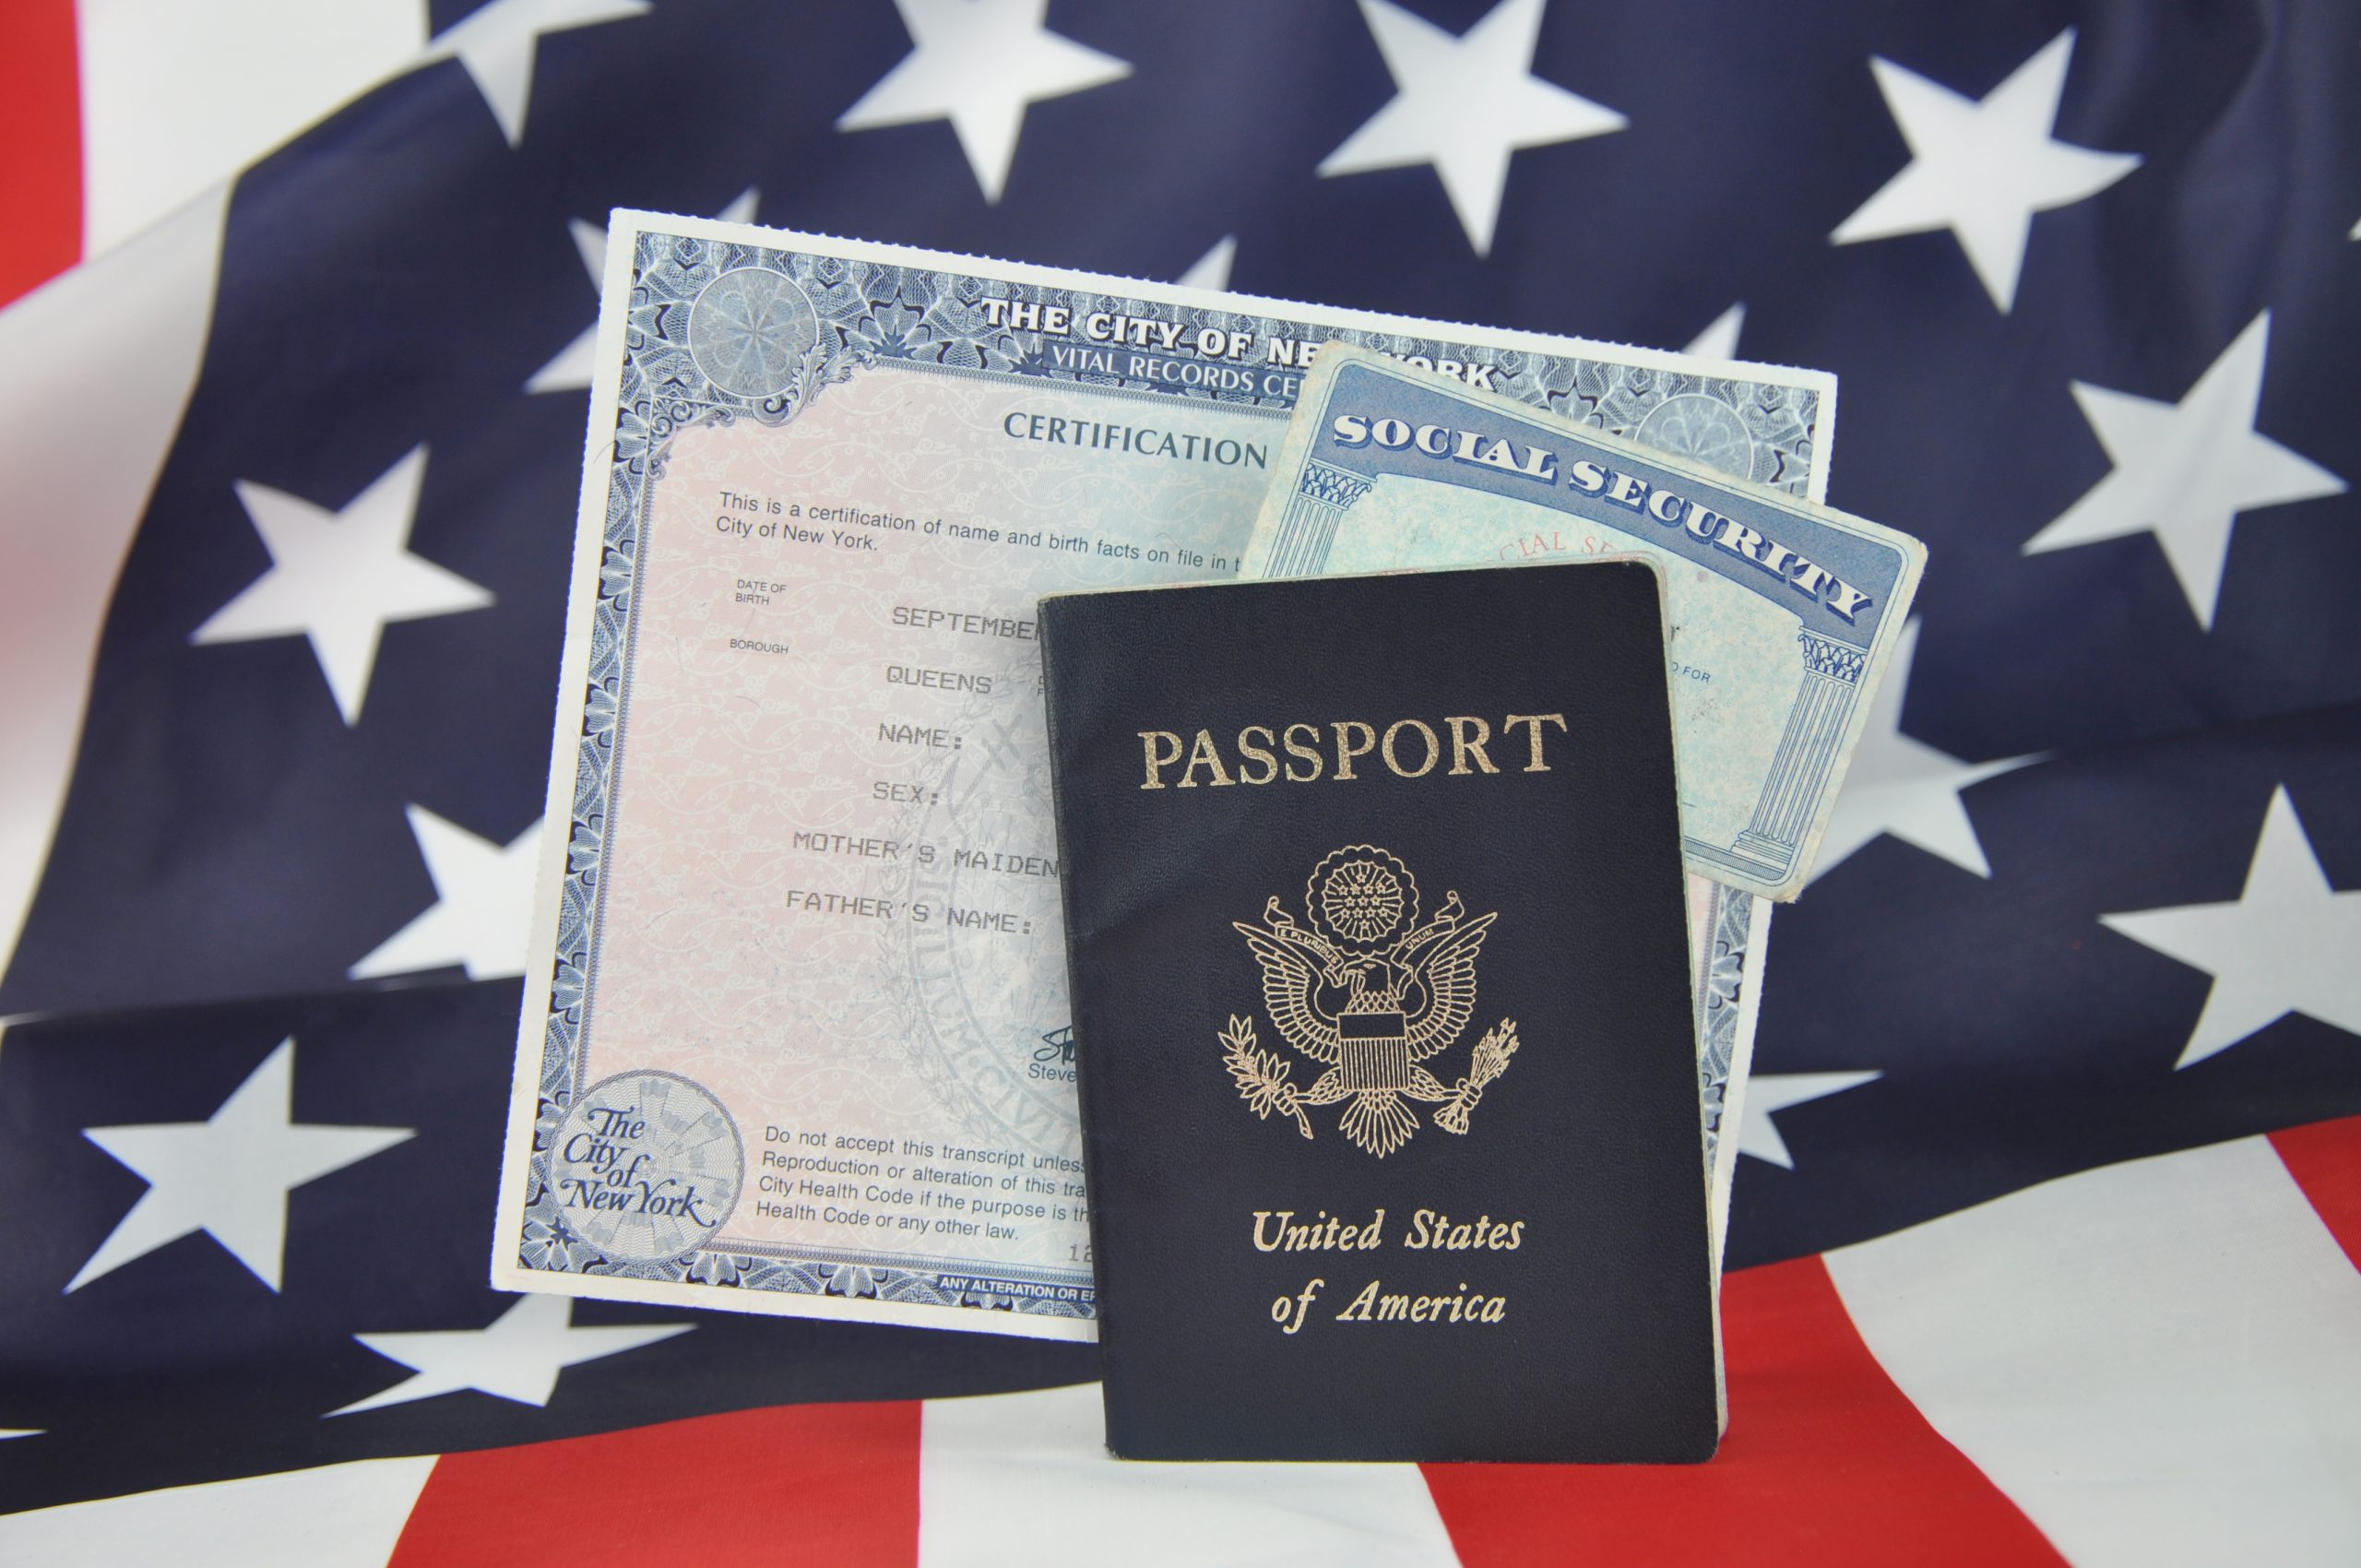 REAL ID In The United States Prompts Need For ID Verification